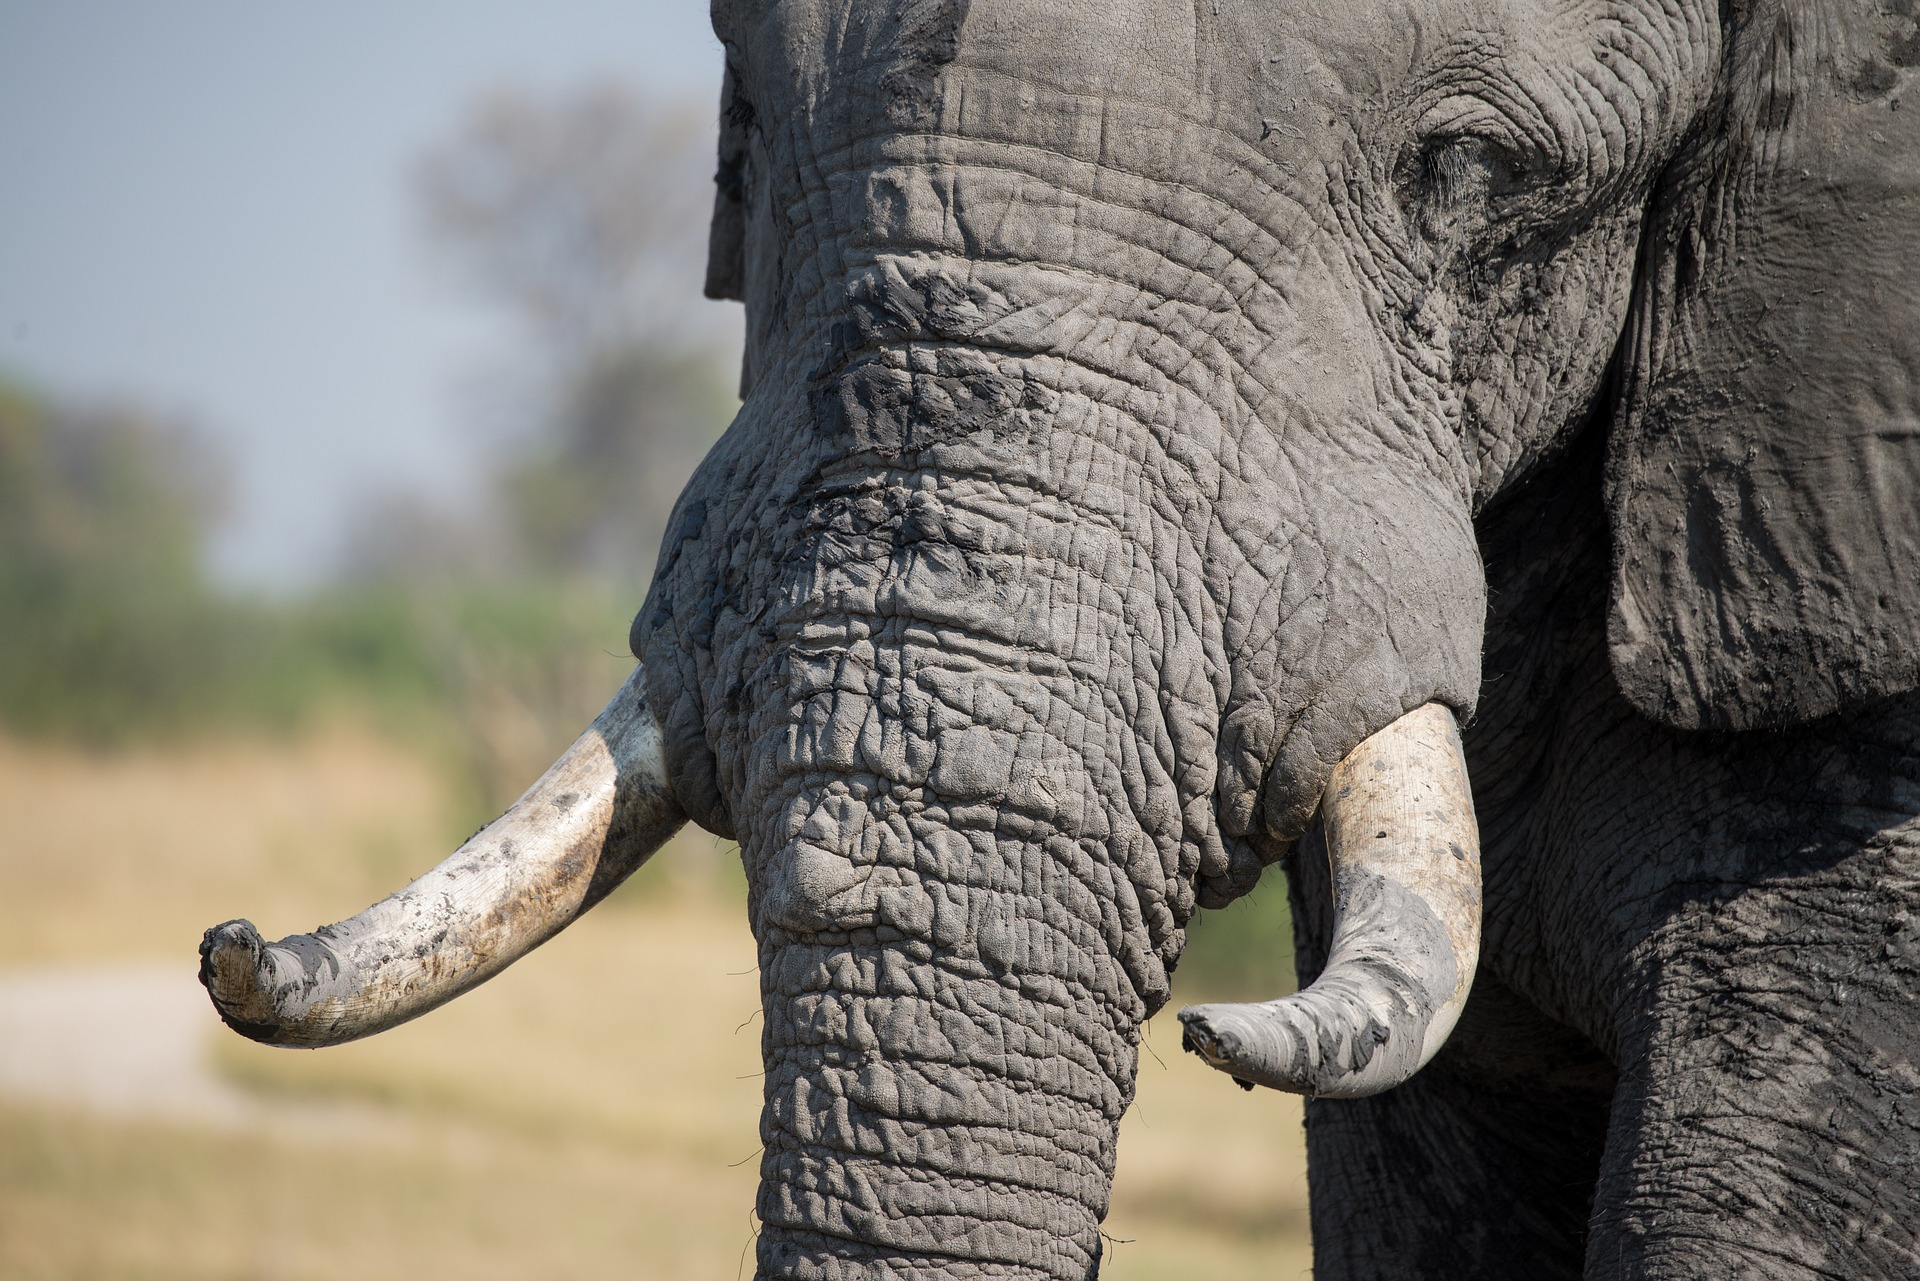 View of the elephant's tusk